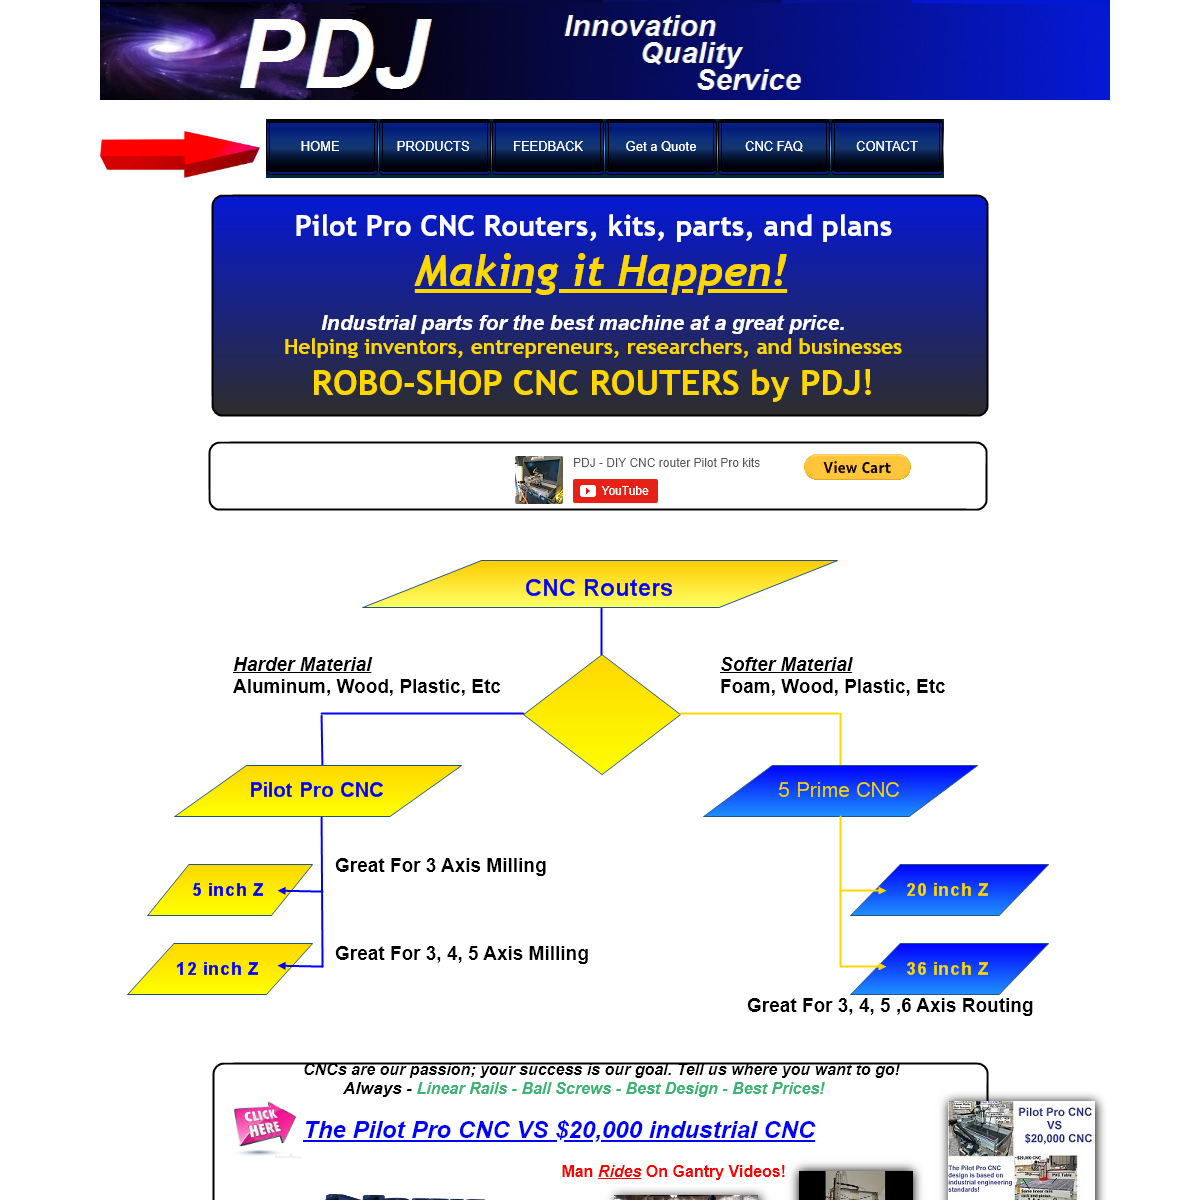 PDJ Pilot Pro CNC router kits, parts, plans, assembled 3D printing prototyping woodworking projects